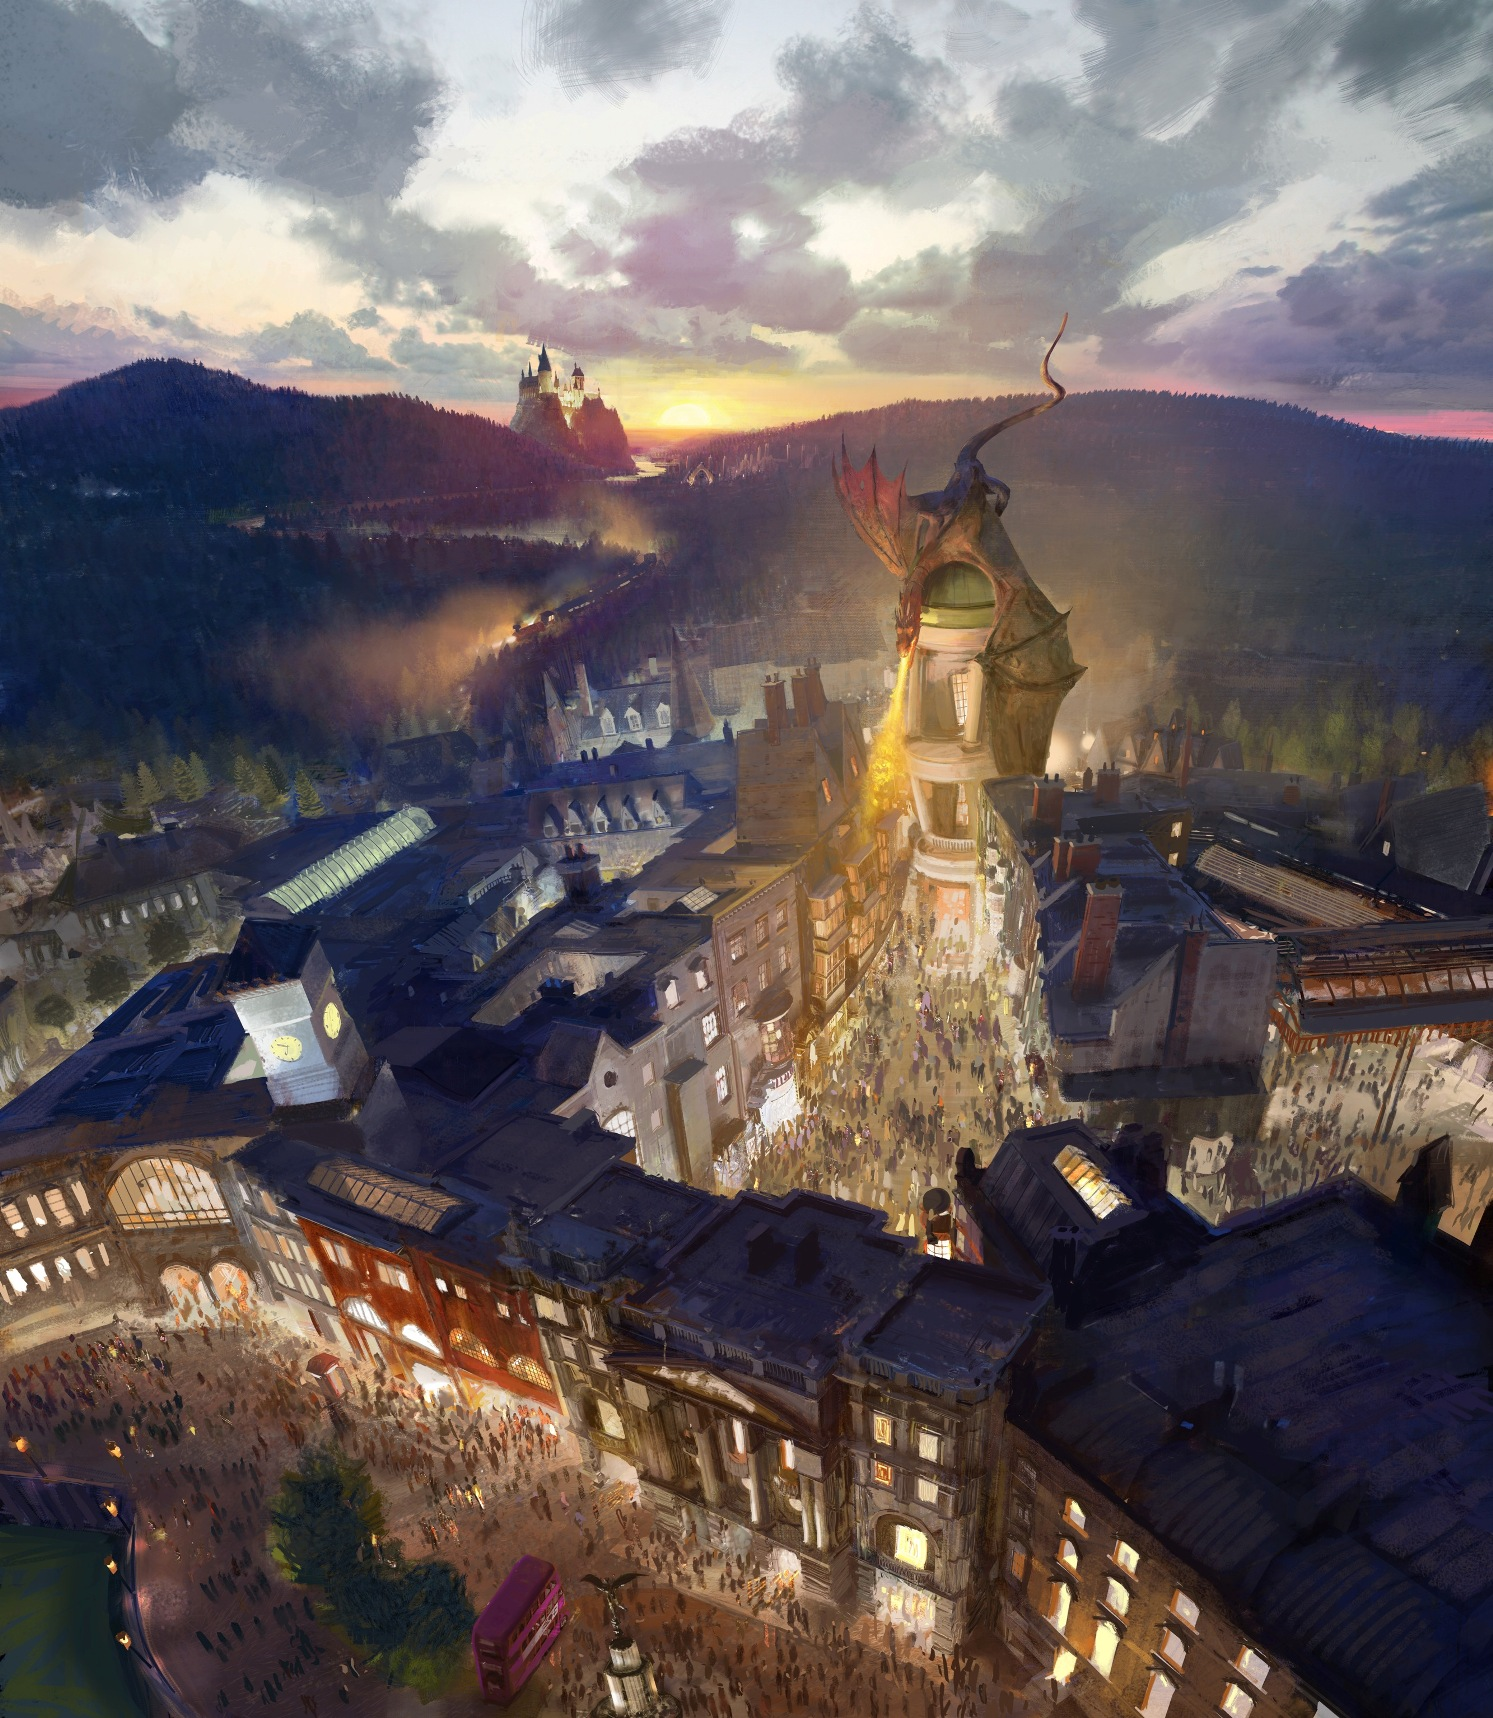 Diagon Alley will come to life at Universal Orlando Resort in 2014